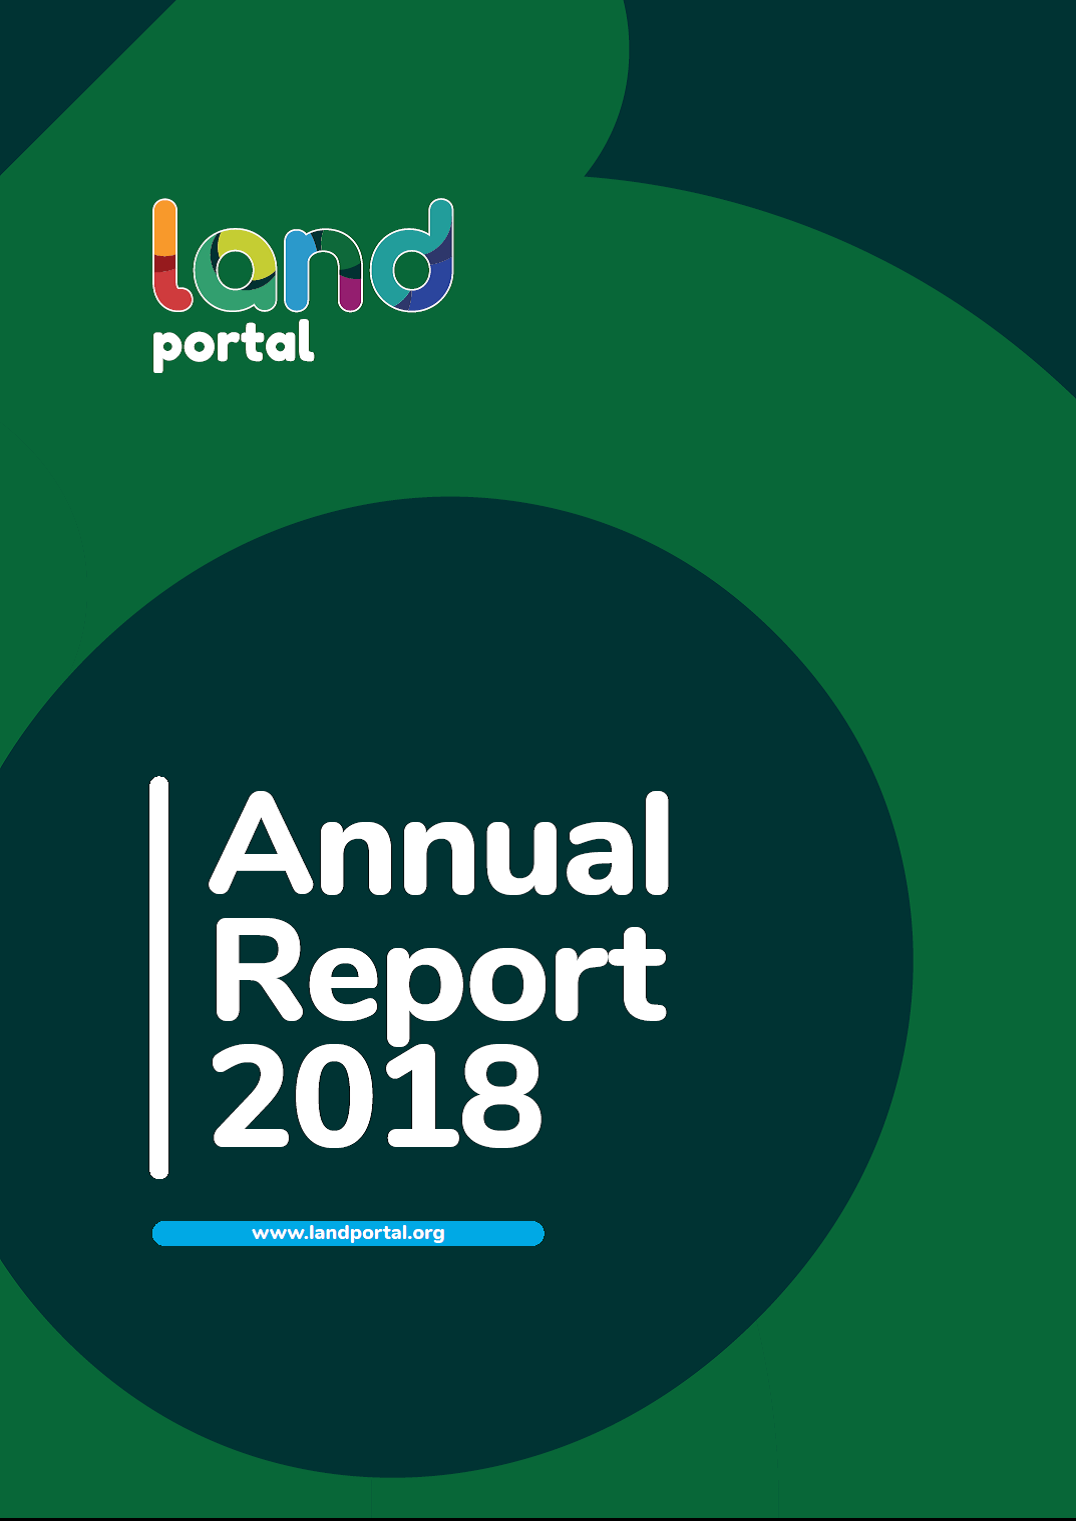 2018 Land Portal Annual Report